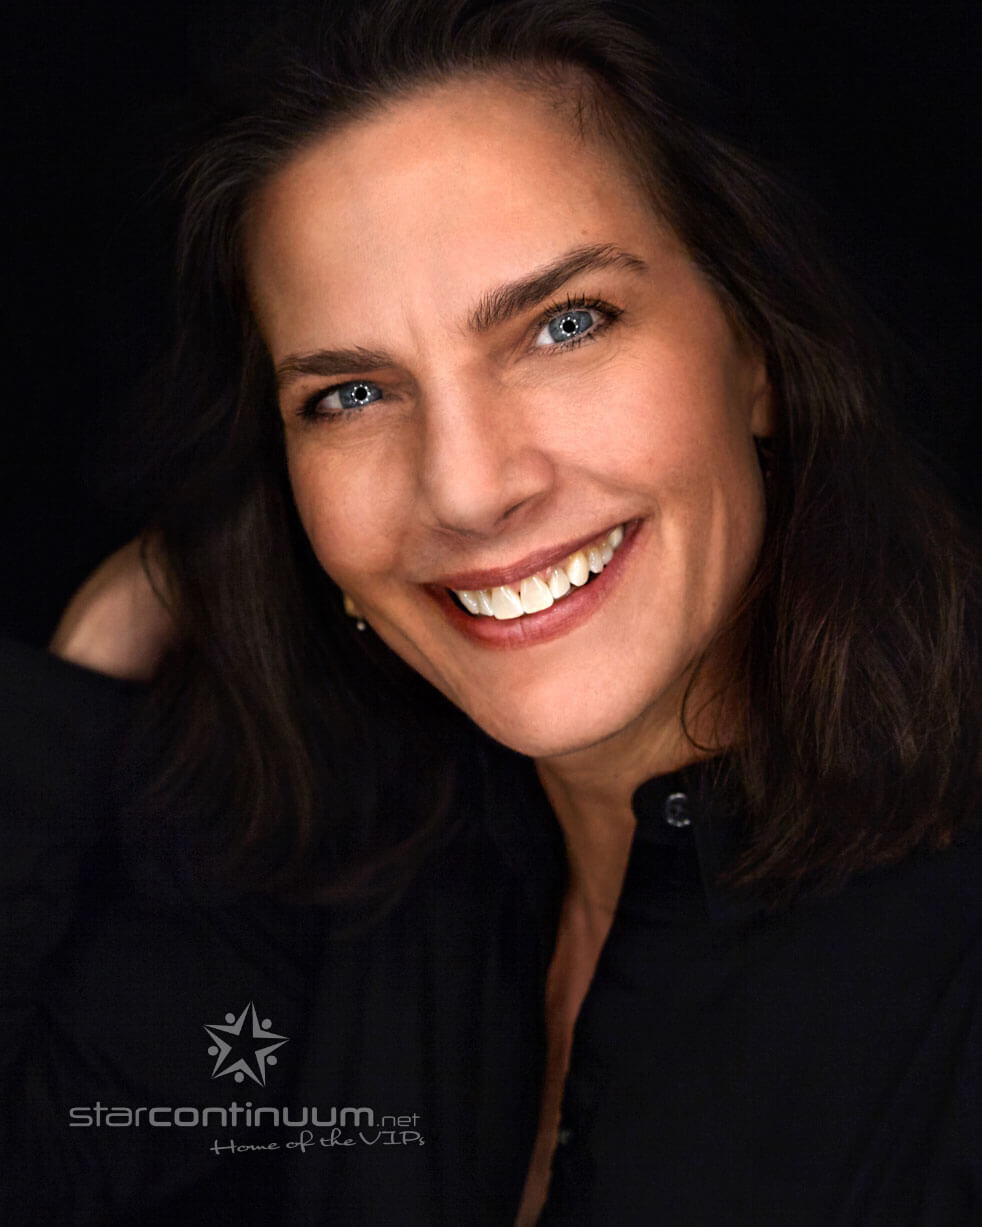 starcontinuum.net | Faces | Terry Farrell